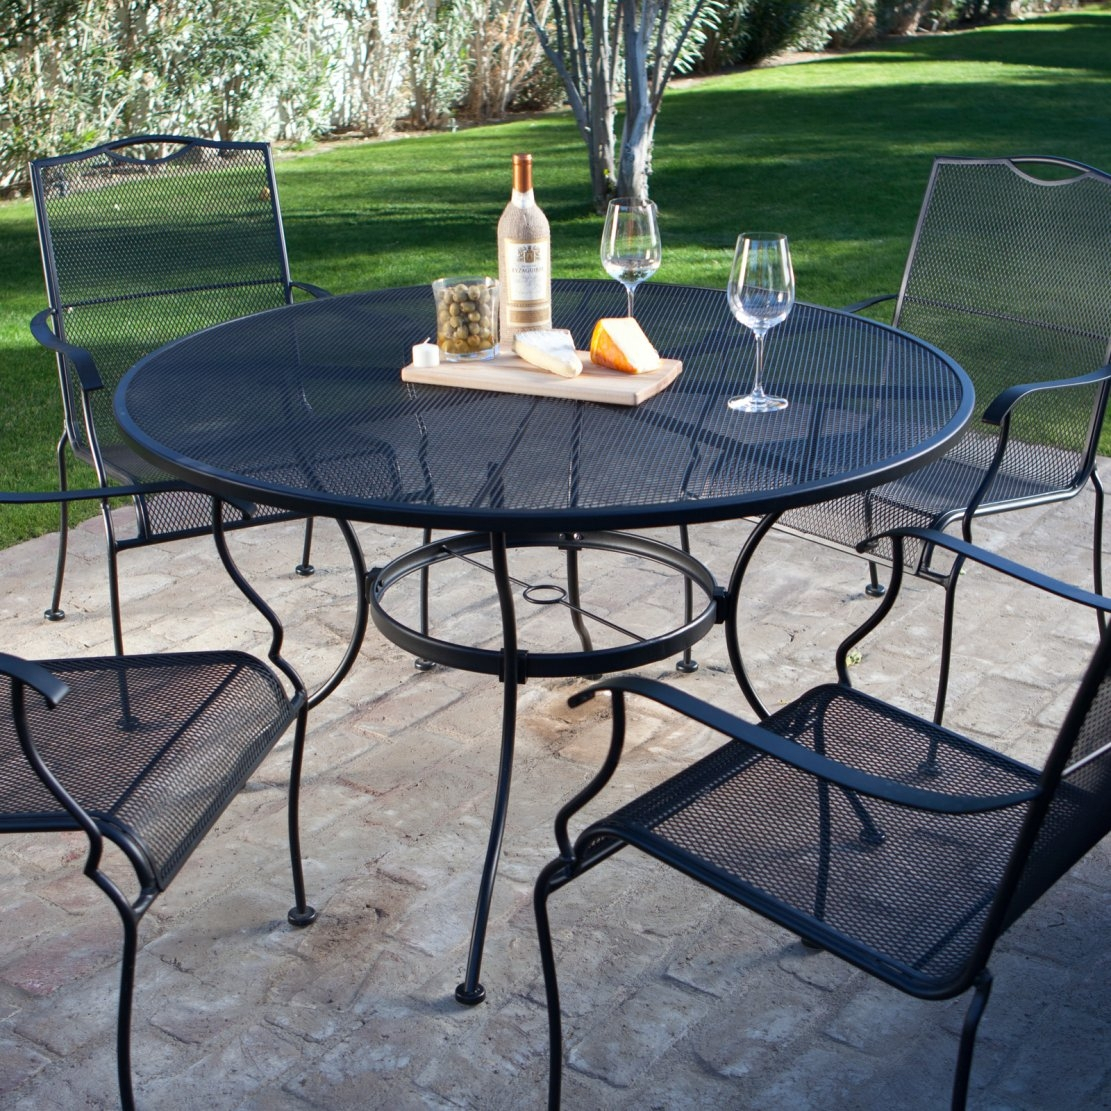 5 Piece Wrought Iron Patio Furniture Dining Set Seats 4 Best intended for size 1111 X 1111